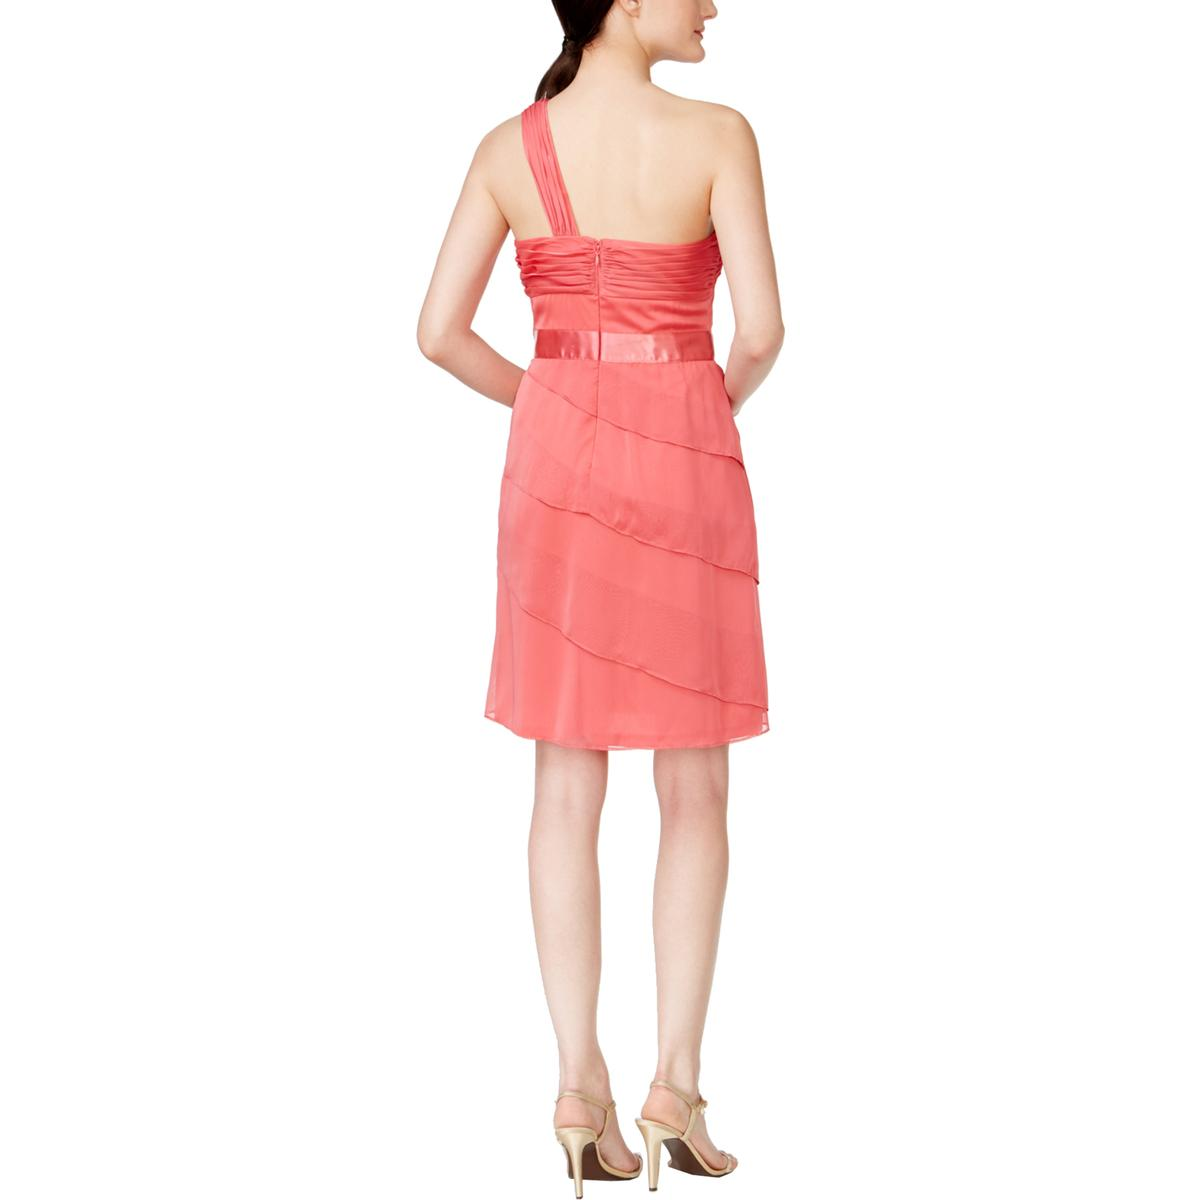 Adrianna-Papell-Womens-Tiered-One-Shoulder-Party-Cocktail-Dress-BHFO-6662 thumbnail 11